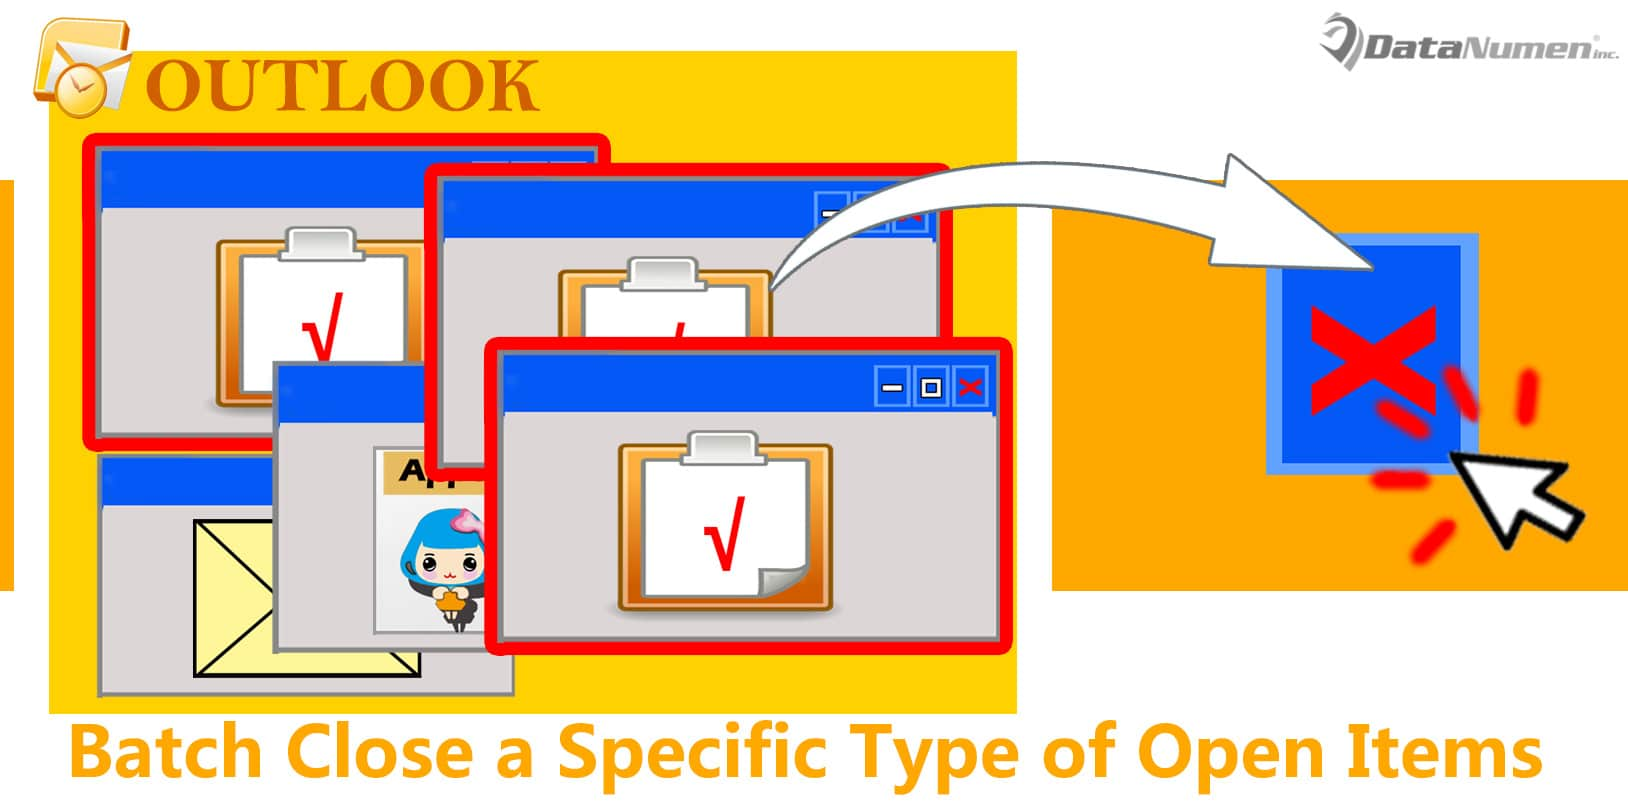 Batch Close a Specific Type of Open Items in Your Outlook